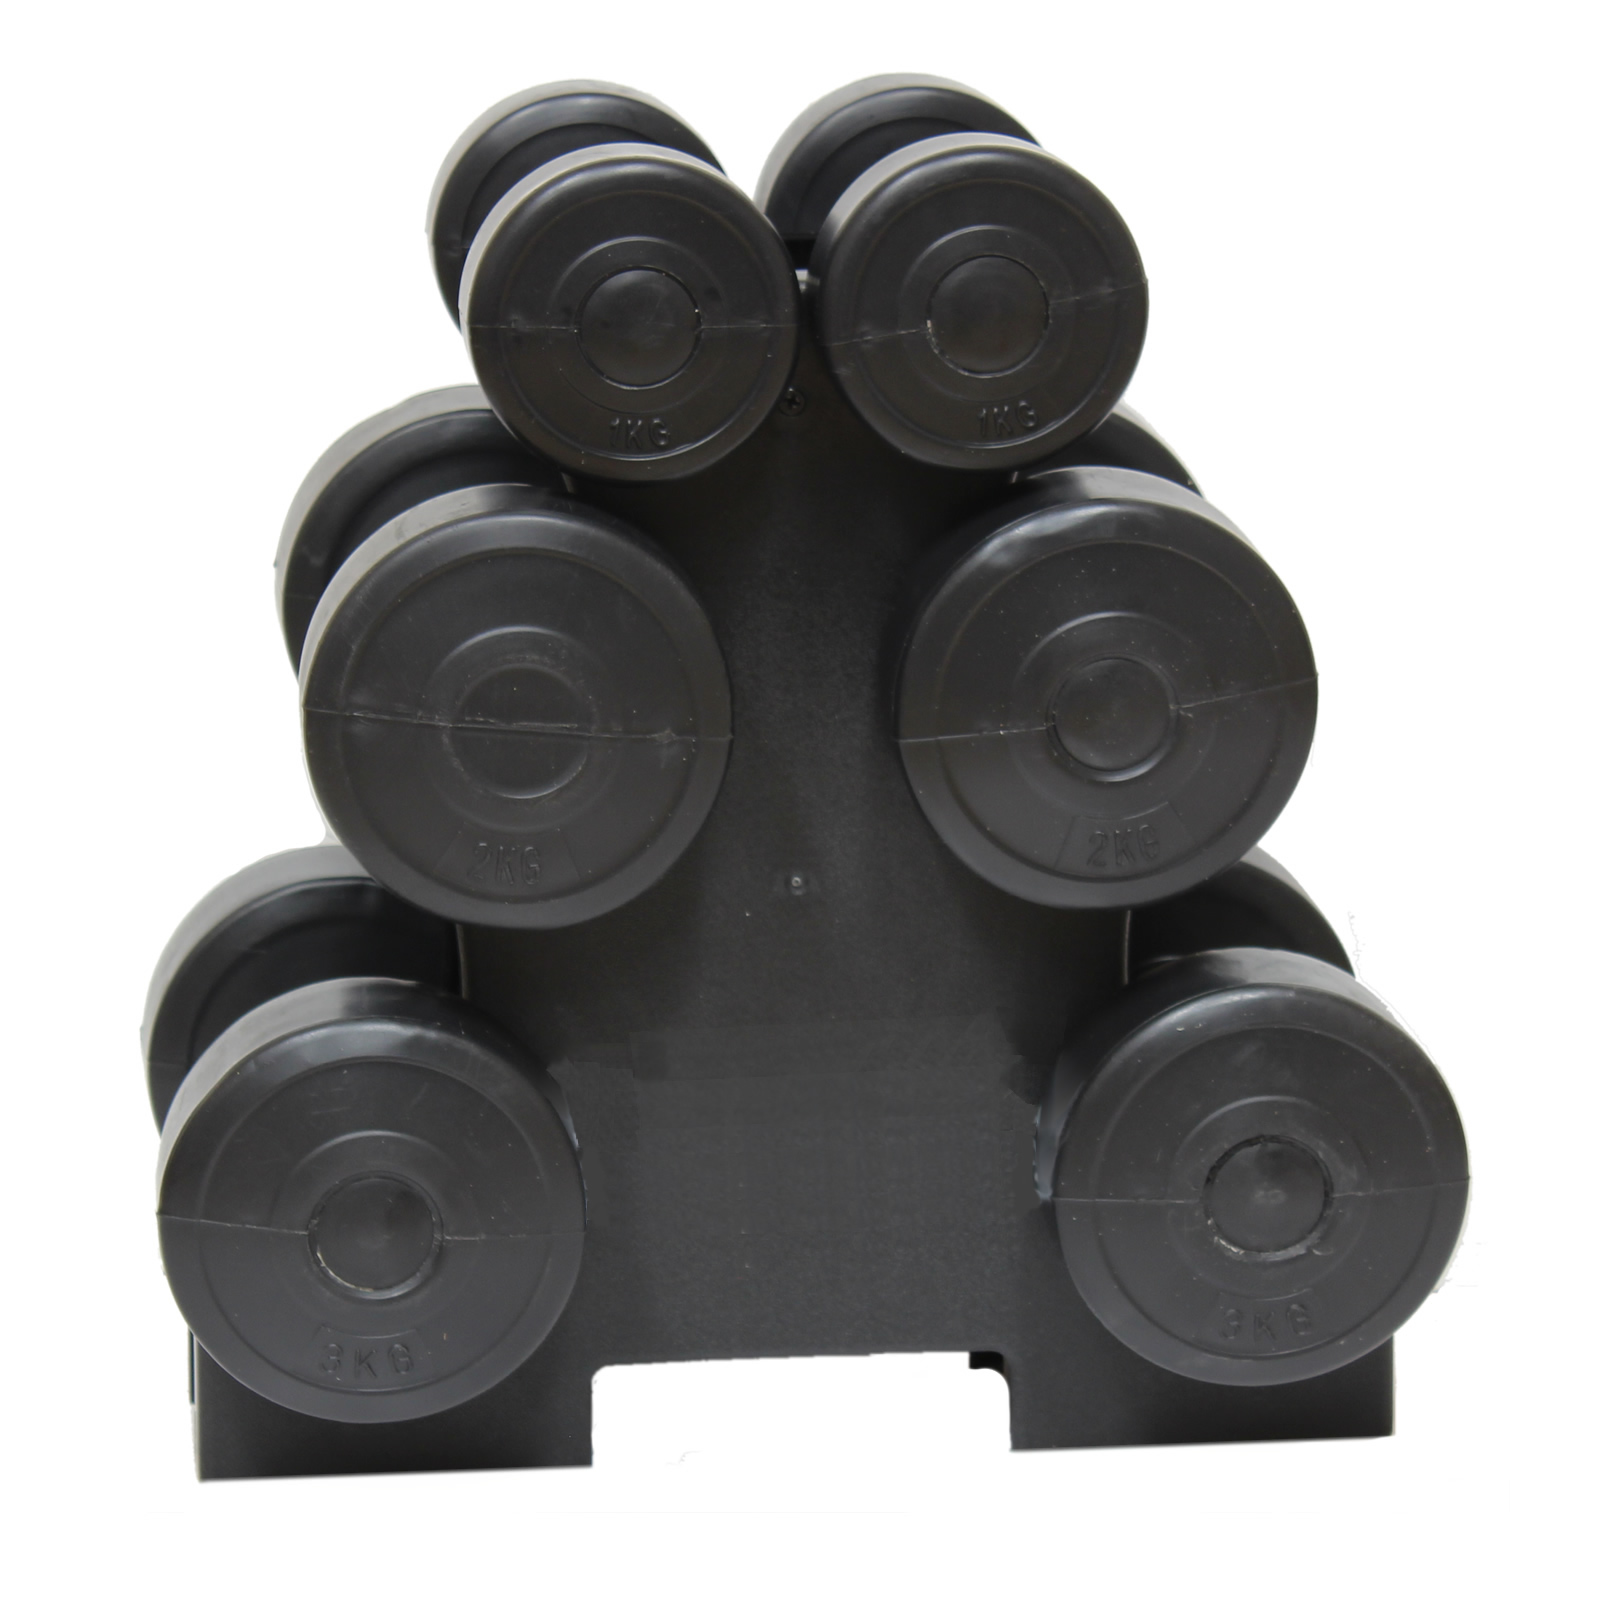 12KG DUMBBELL WEIGHTS SET & STAND/RACK HOME GYM/EXERCISE/WORKOUT WEIGHT LIFTING Enlarged Preview